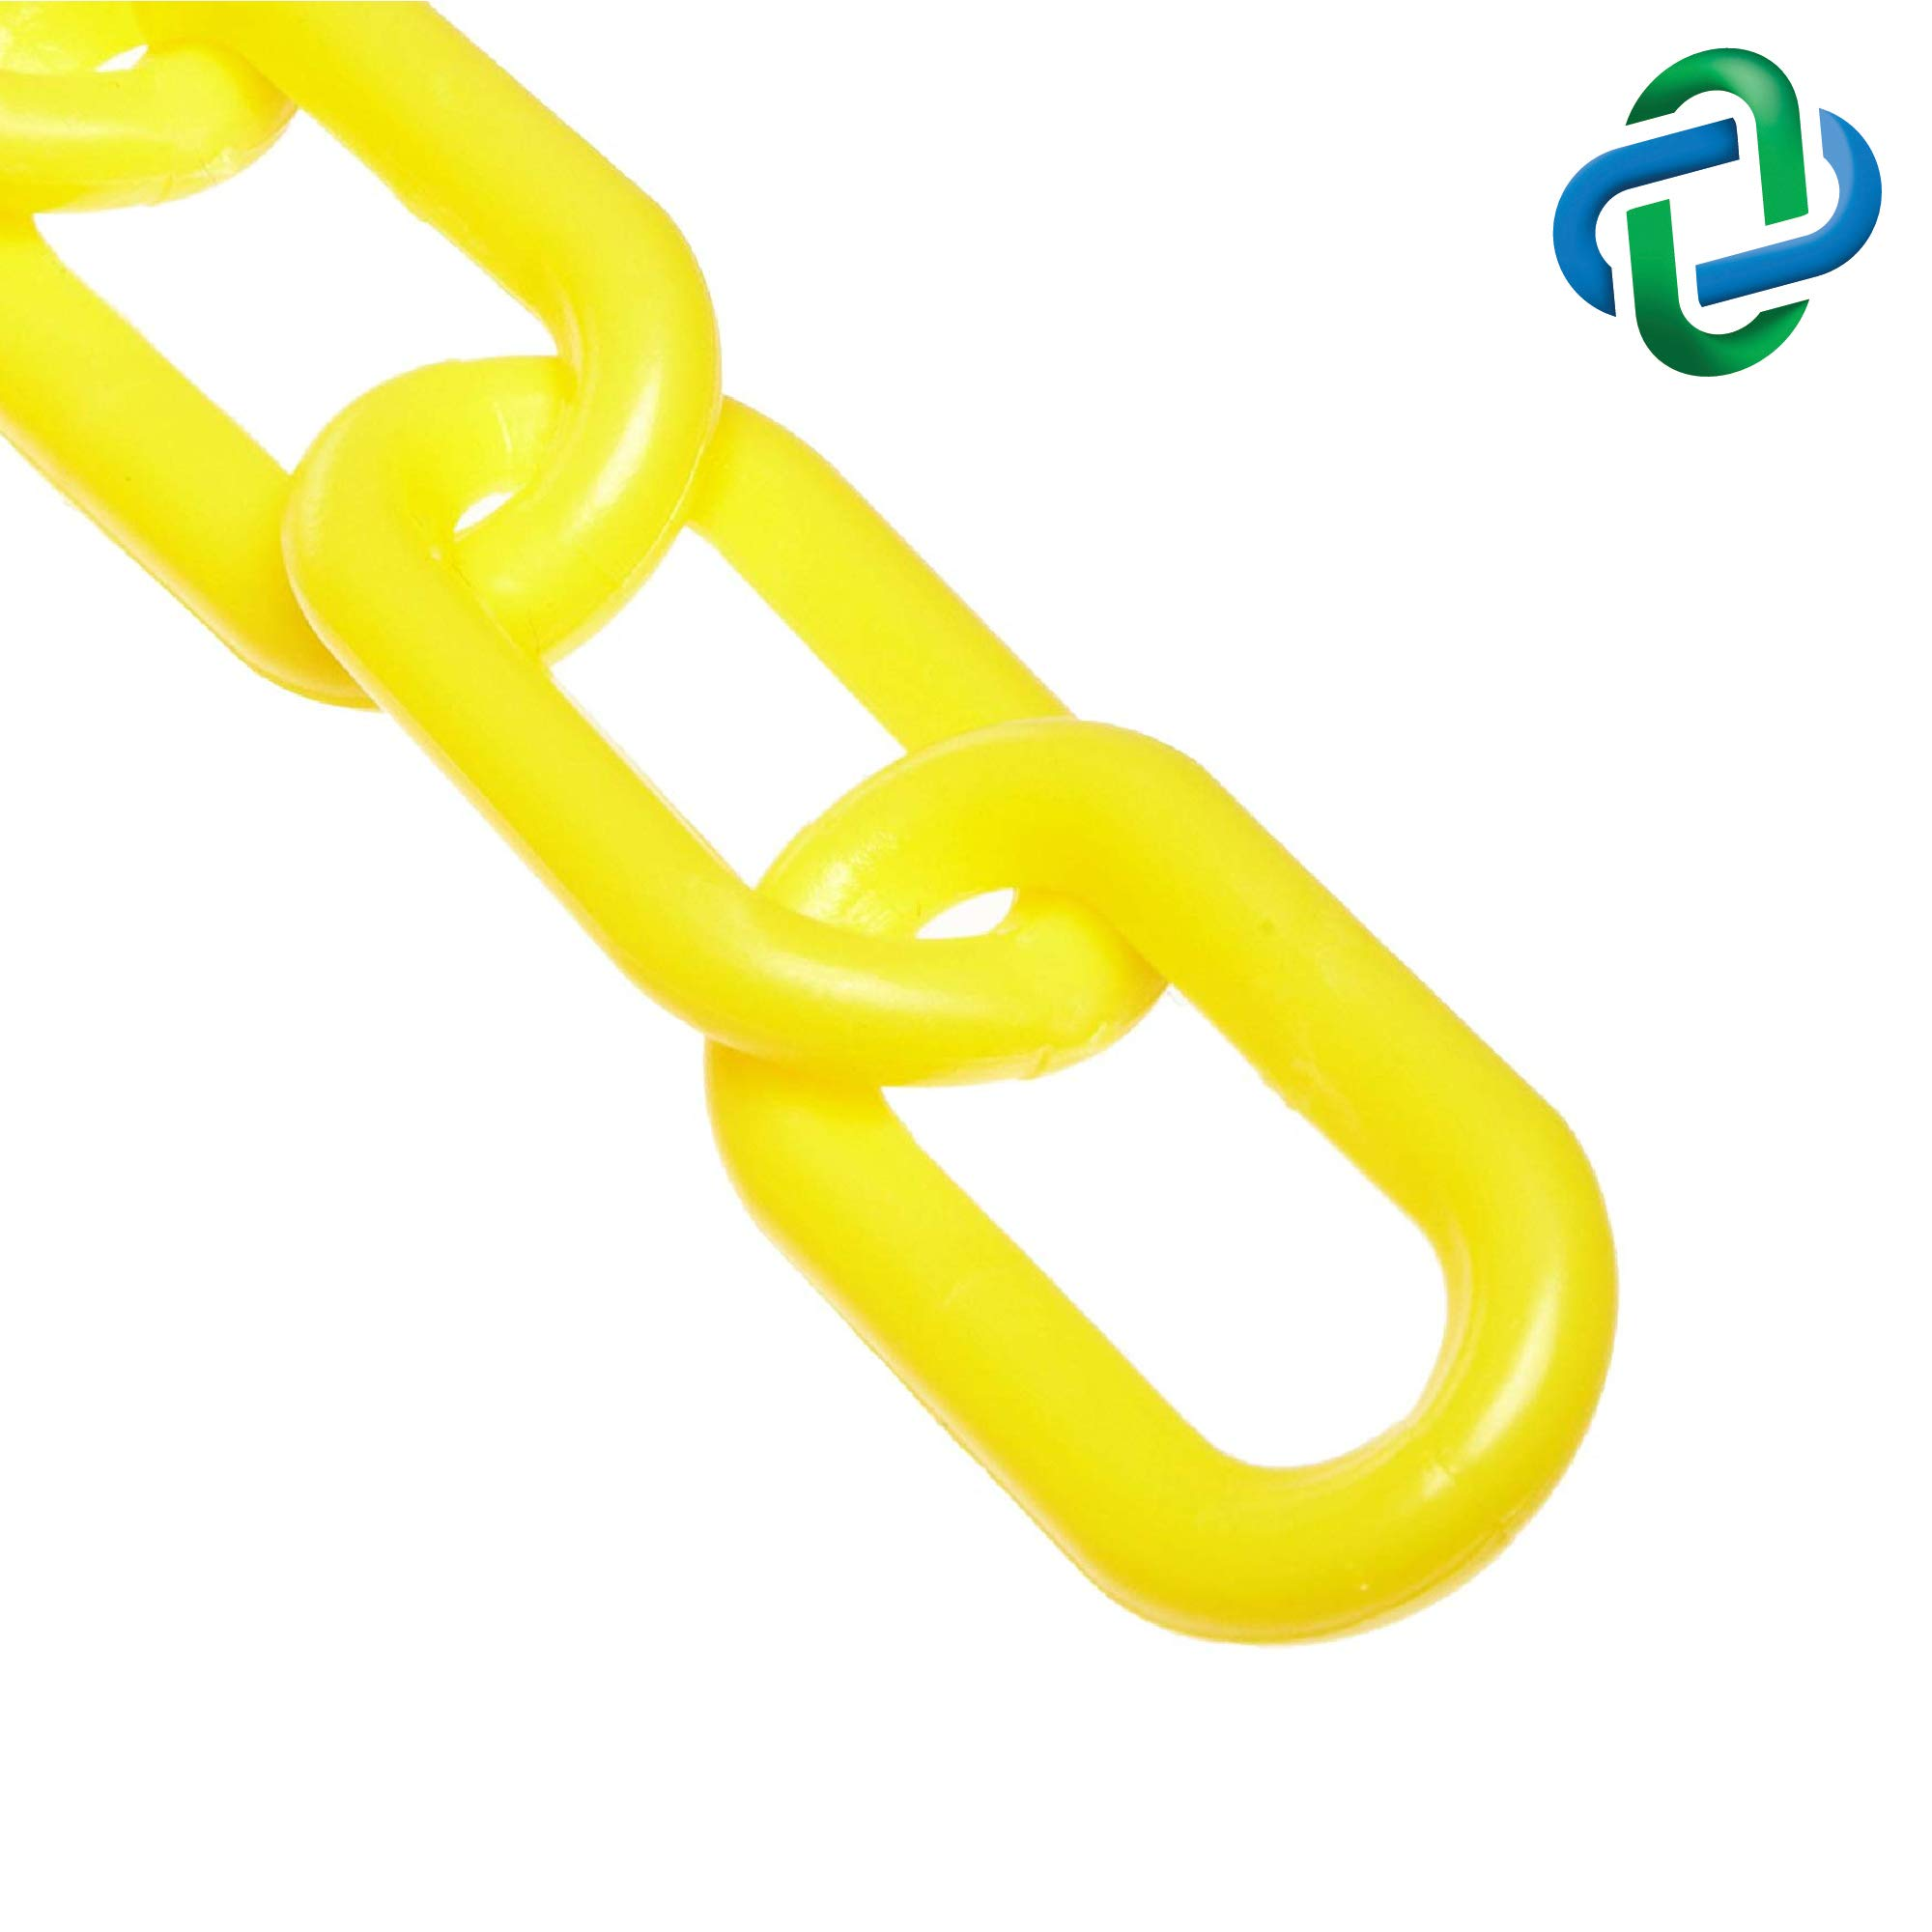 Mr. Chain Plastic Barrier Chain, Yellow, 2-Inch Link Diameter, 50-Foot Length (50002-50) by Mr. Chain